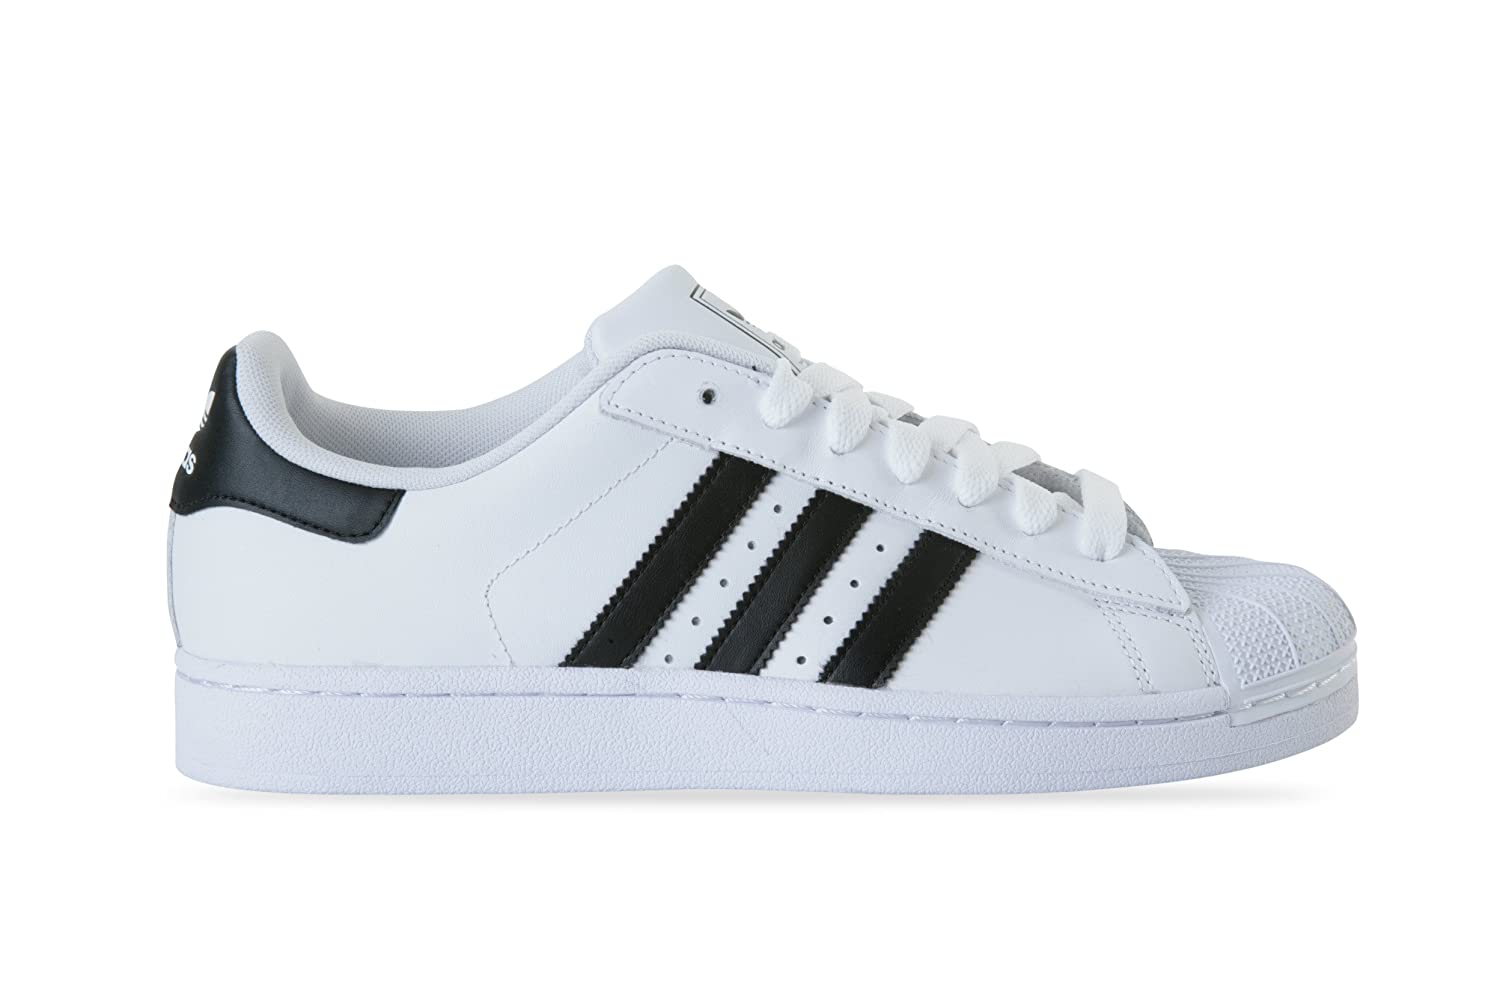 check out 3bfb5 e1532 Adidas Superstar II White/Black G17068 for Men